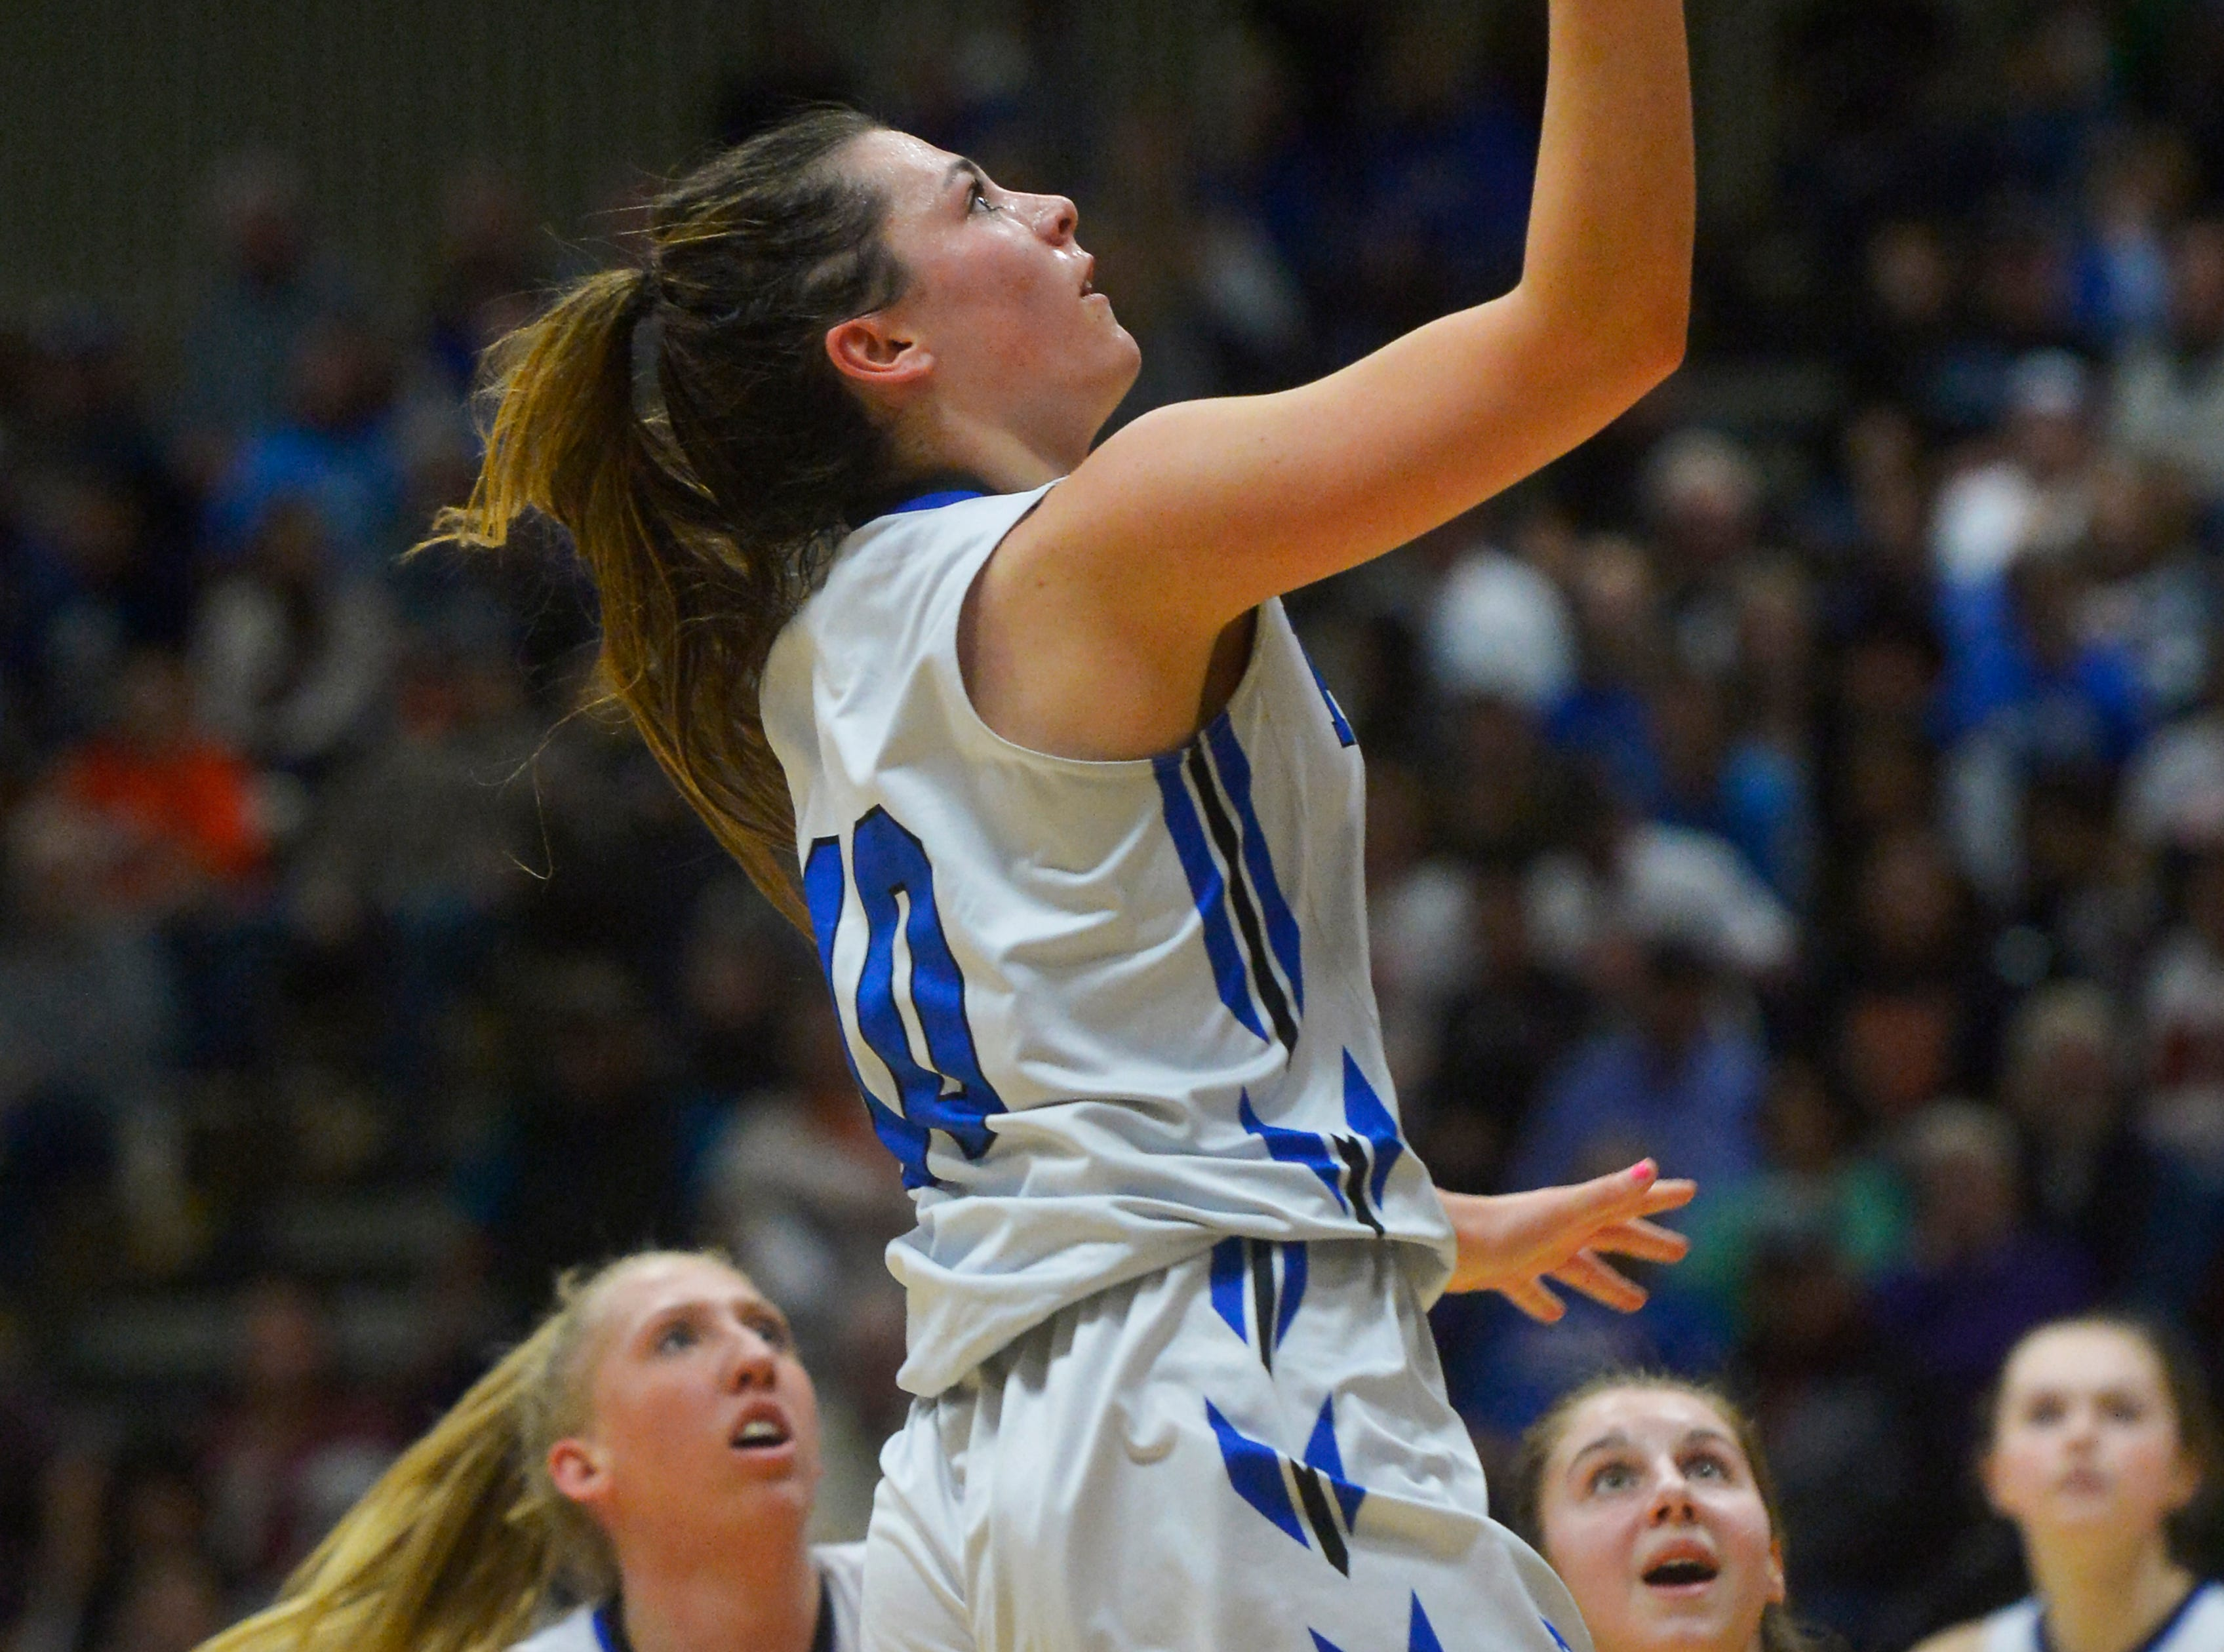 Havre's Kyndall Keller scores in the semifinal game against Laurel during the State Class A Basketball Tournament in the Four Seasons Arena, Friday.